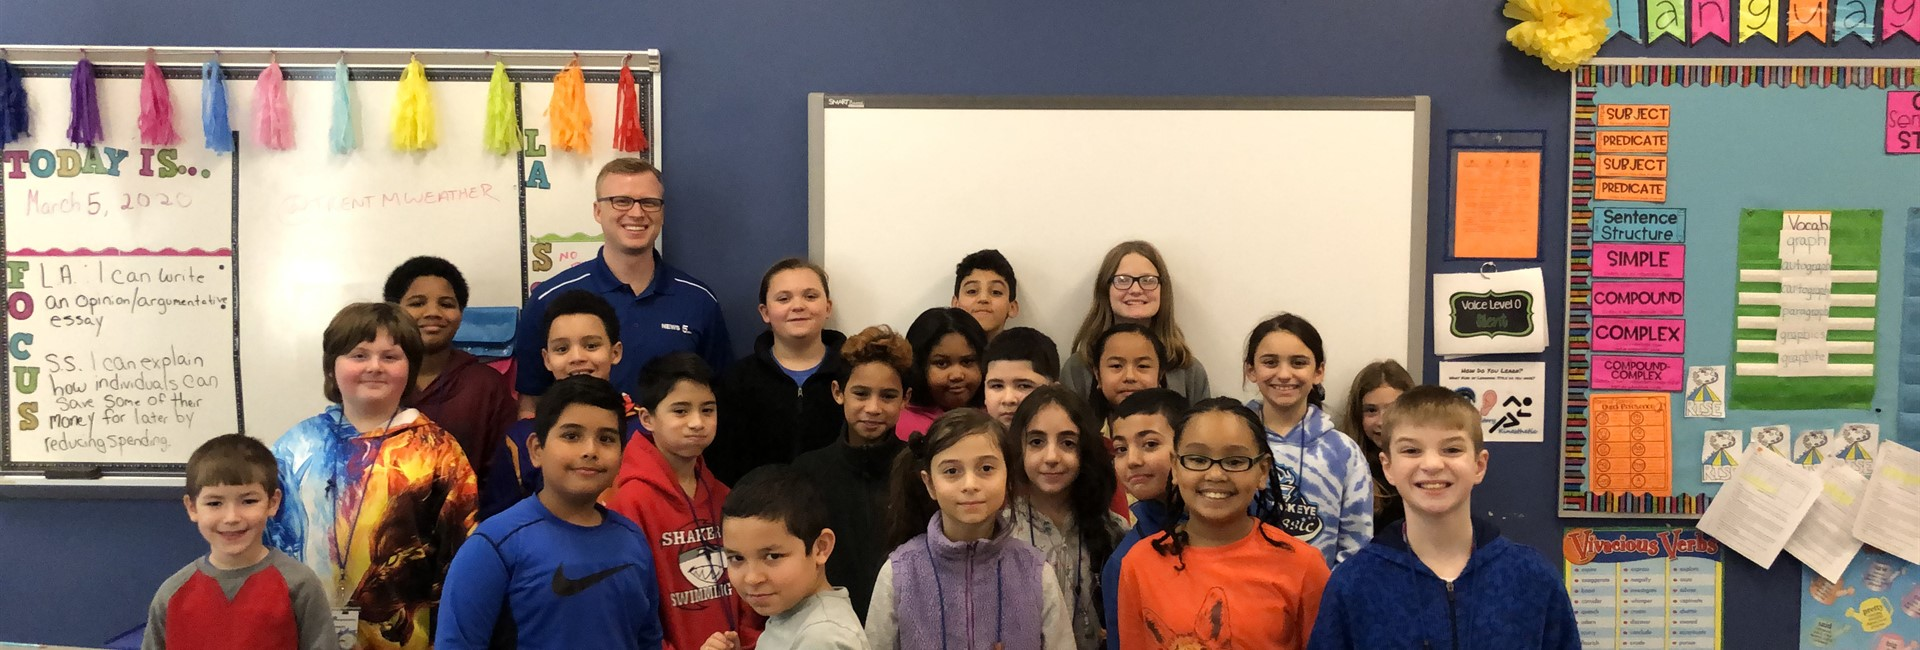 News5 Meteorologist Trent Magill with 4th Graders